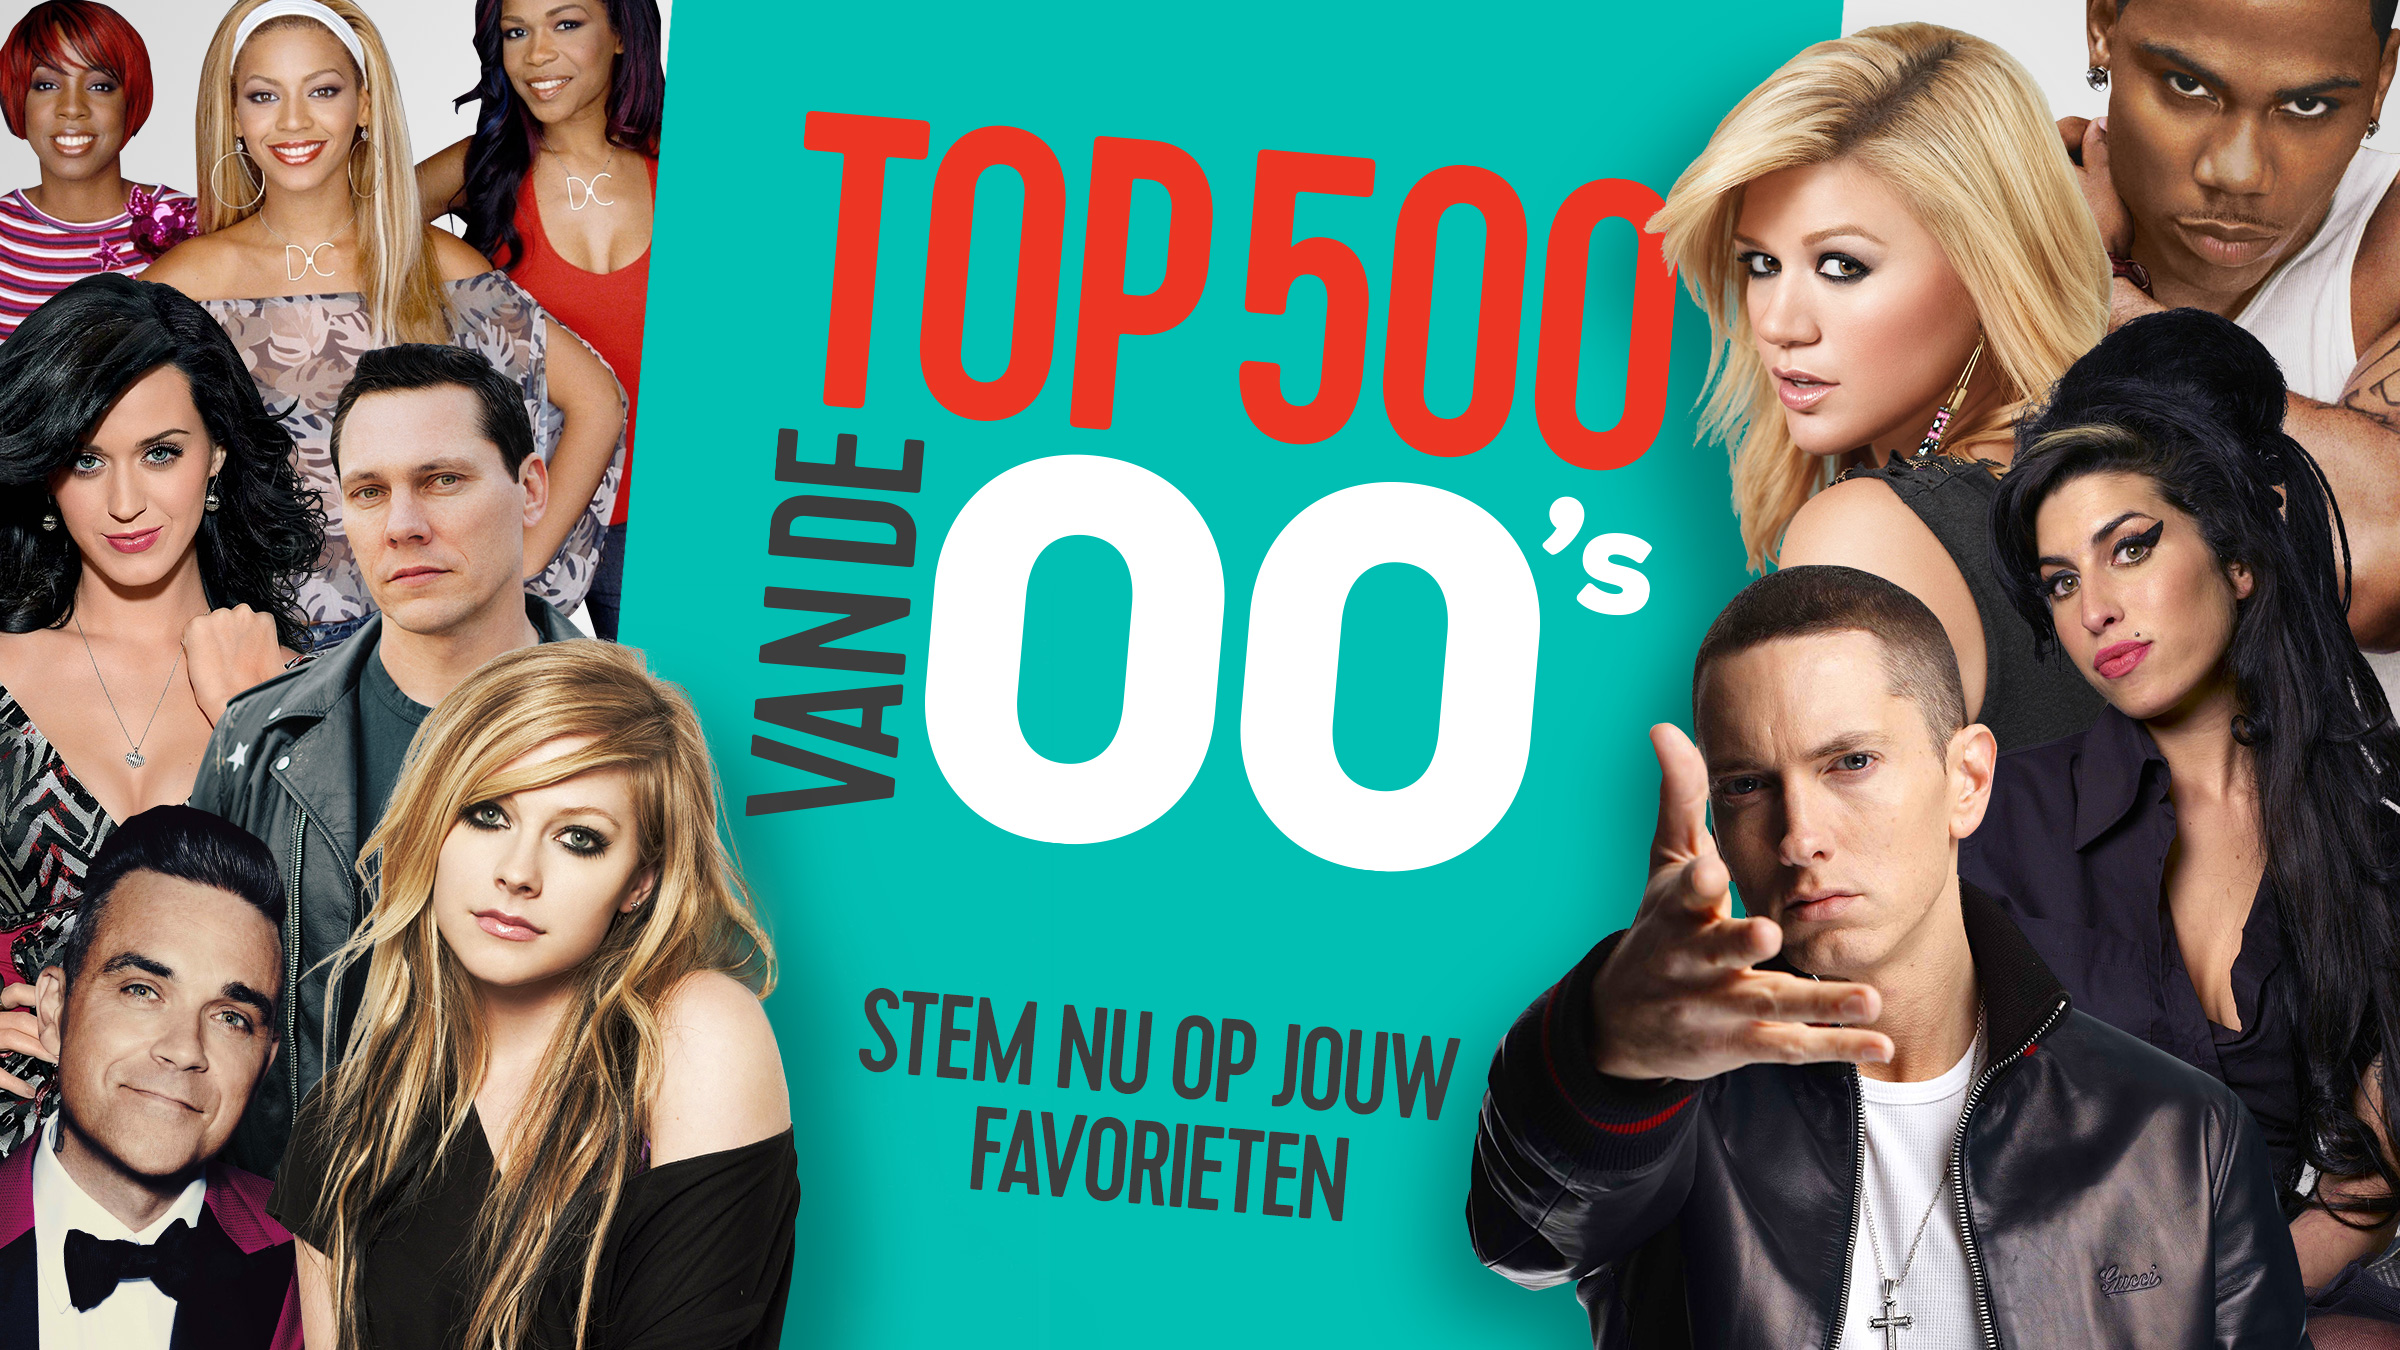 Qmusic teaser top500 00s v1